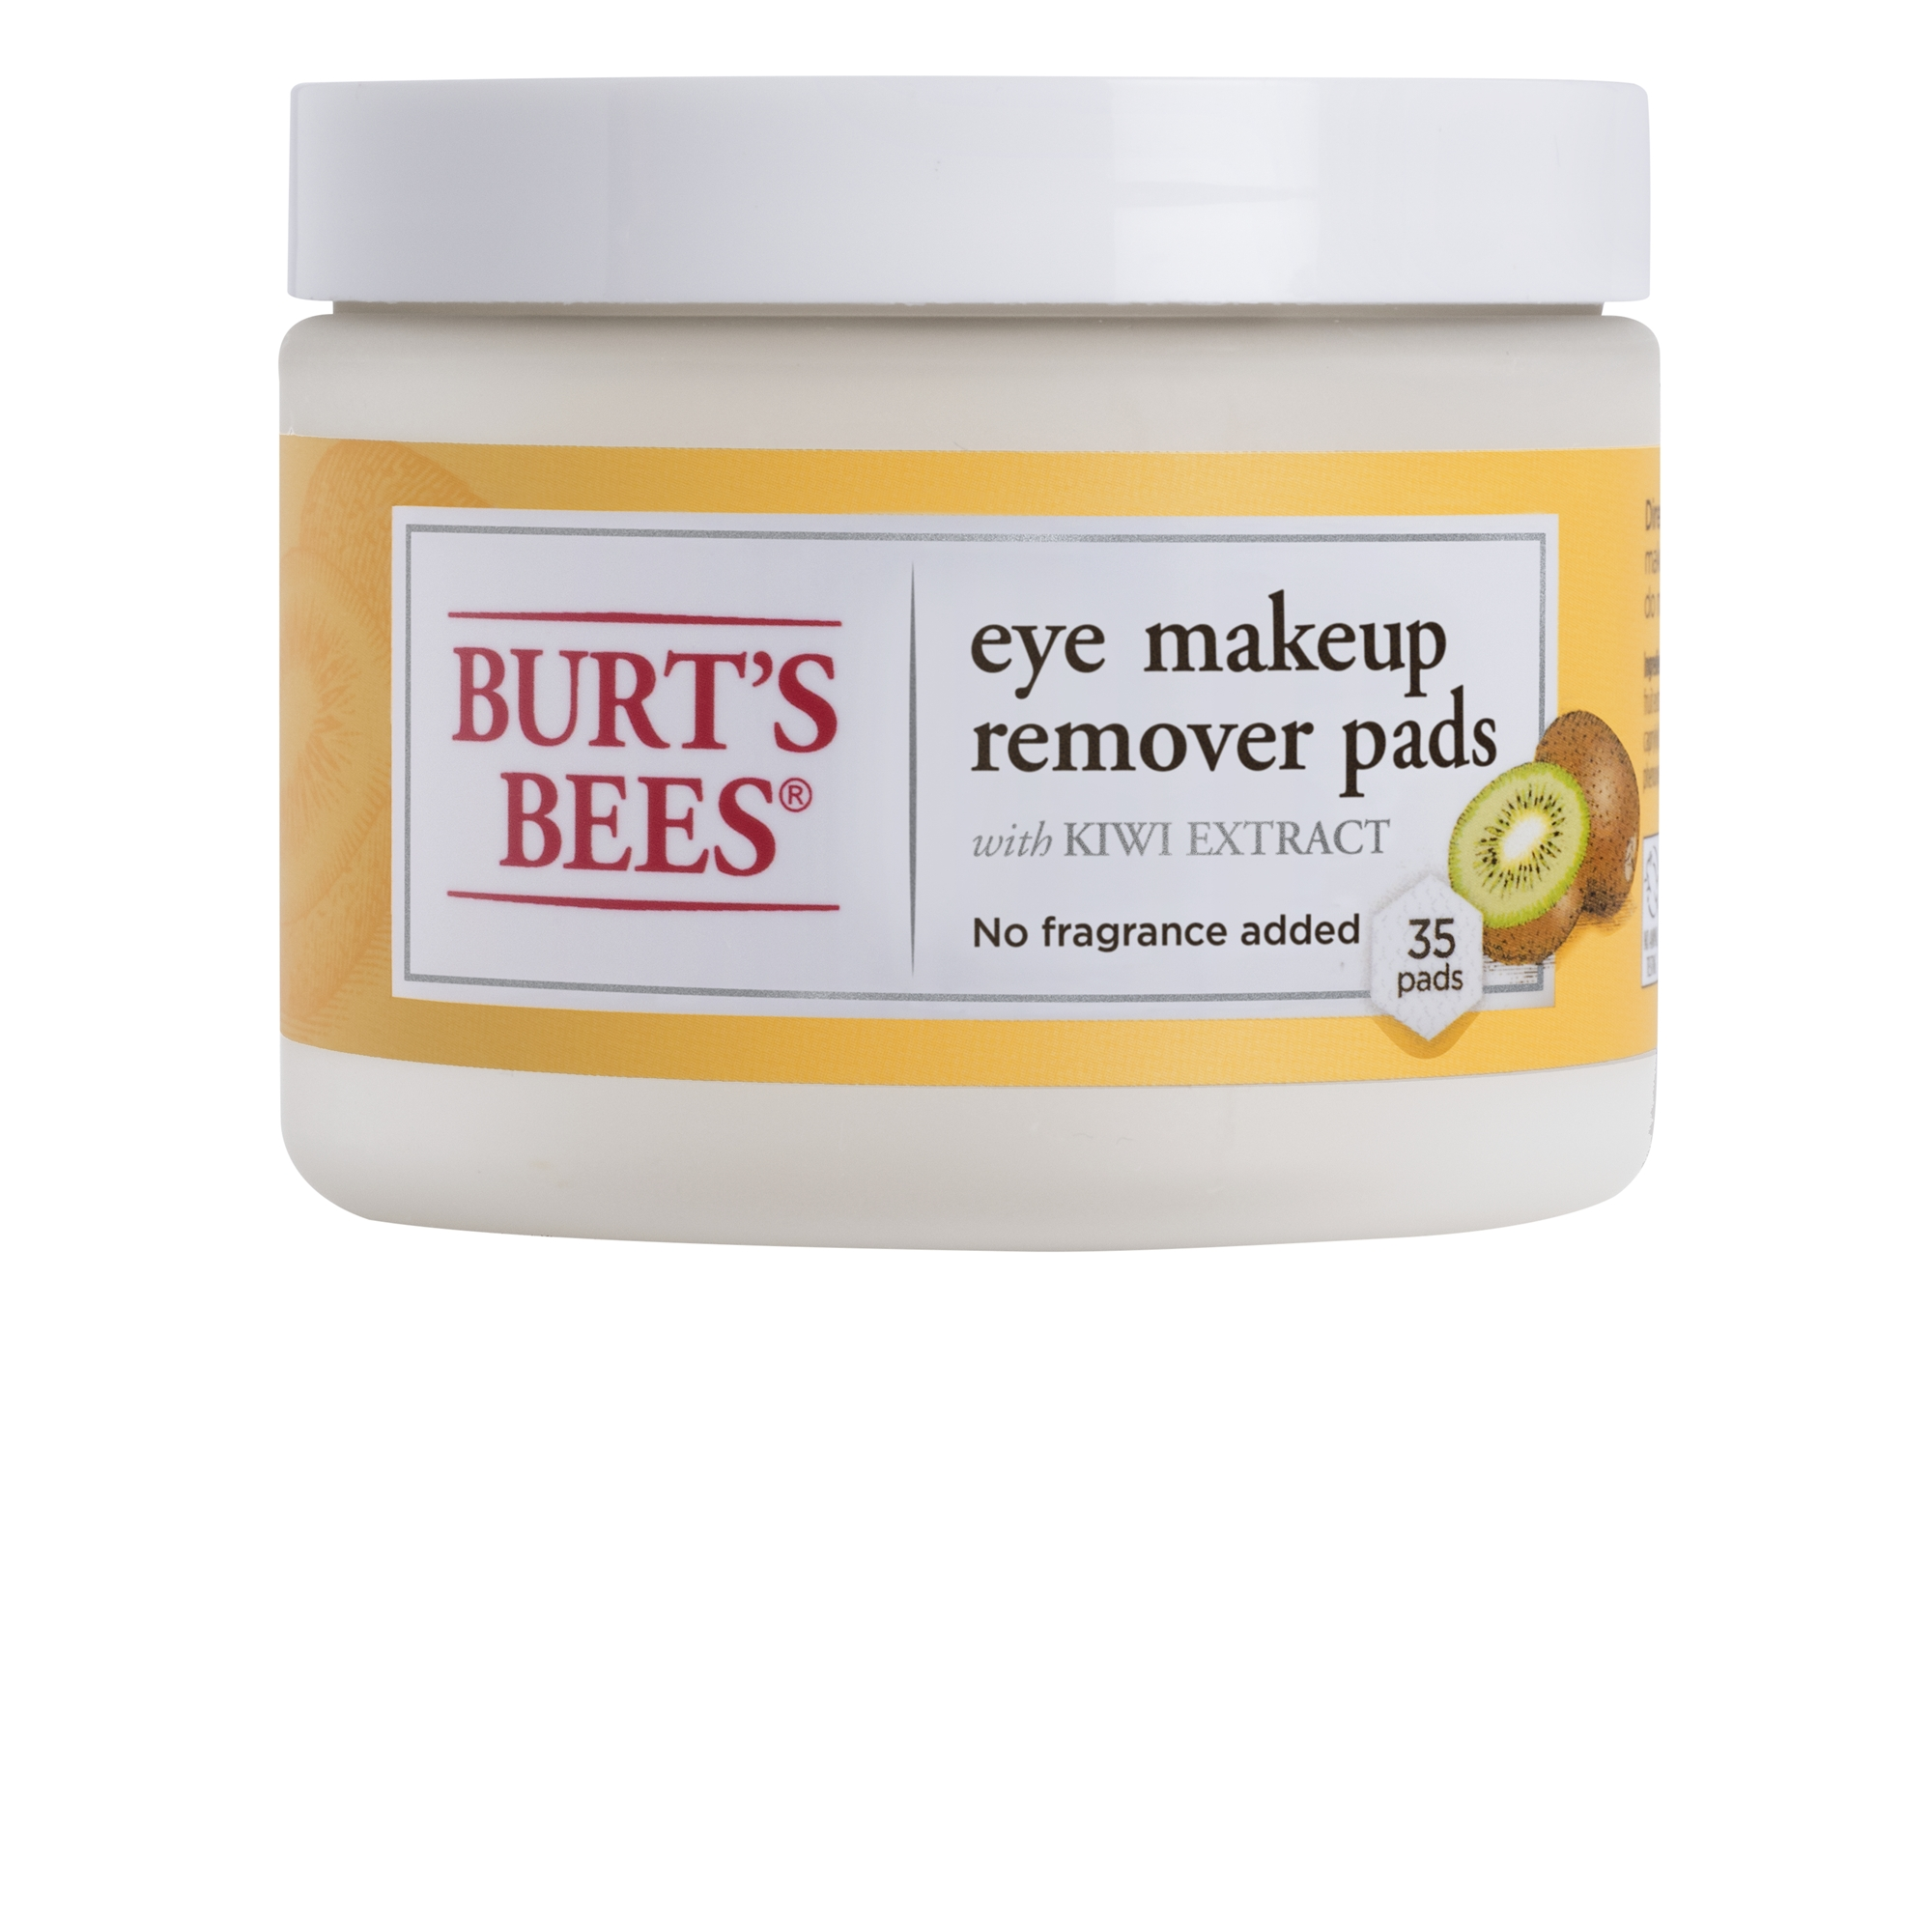 Burt's Bees Eye Makeup Remover Pads, 35 ct